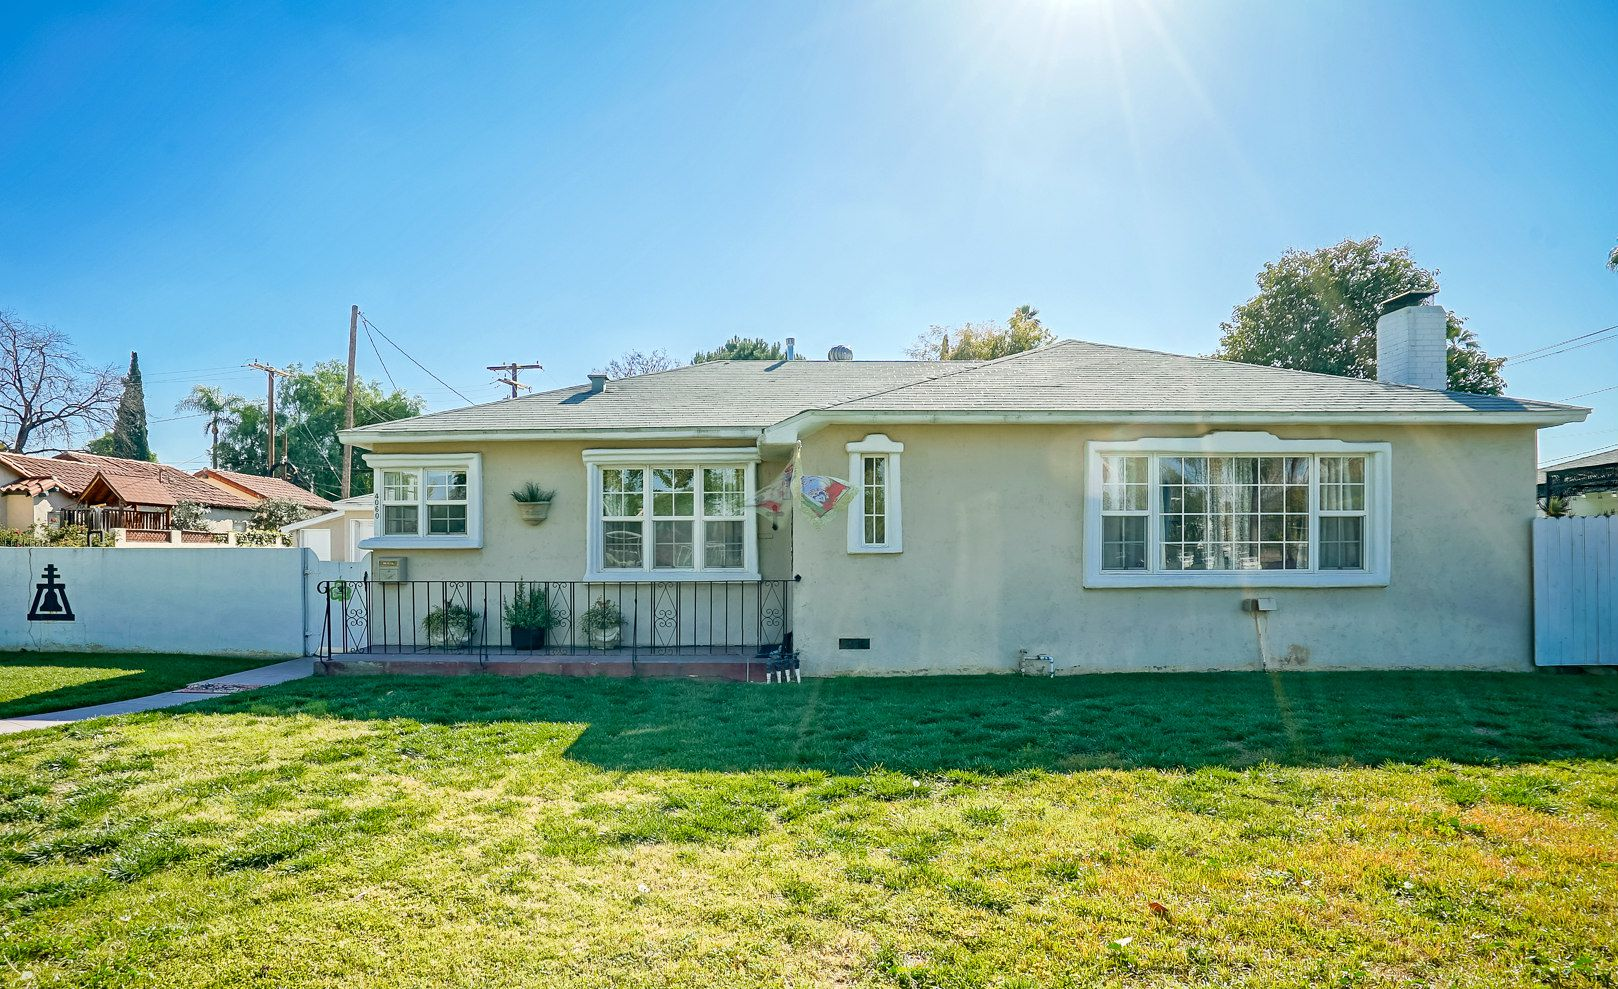 4060 Ramona Dr, Riverside CA 92506 listed by THE SISTER TEAM